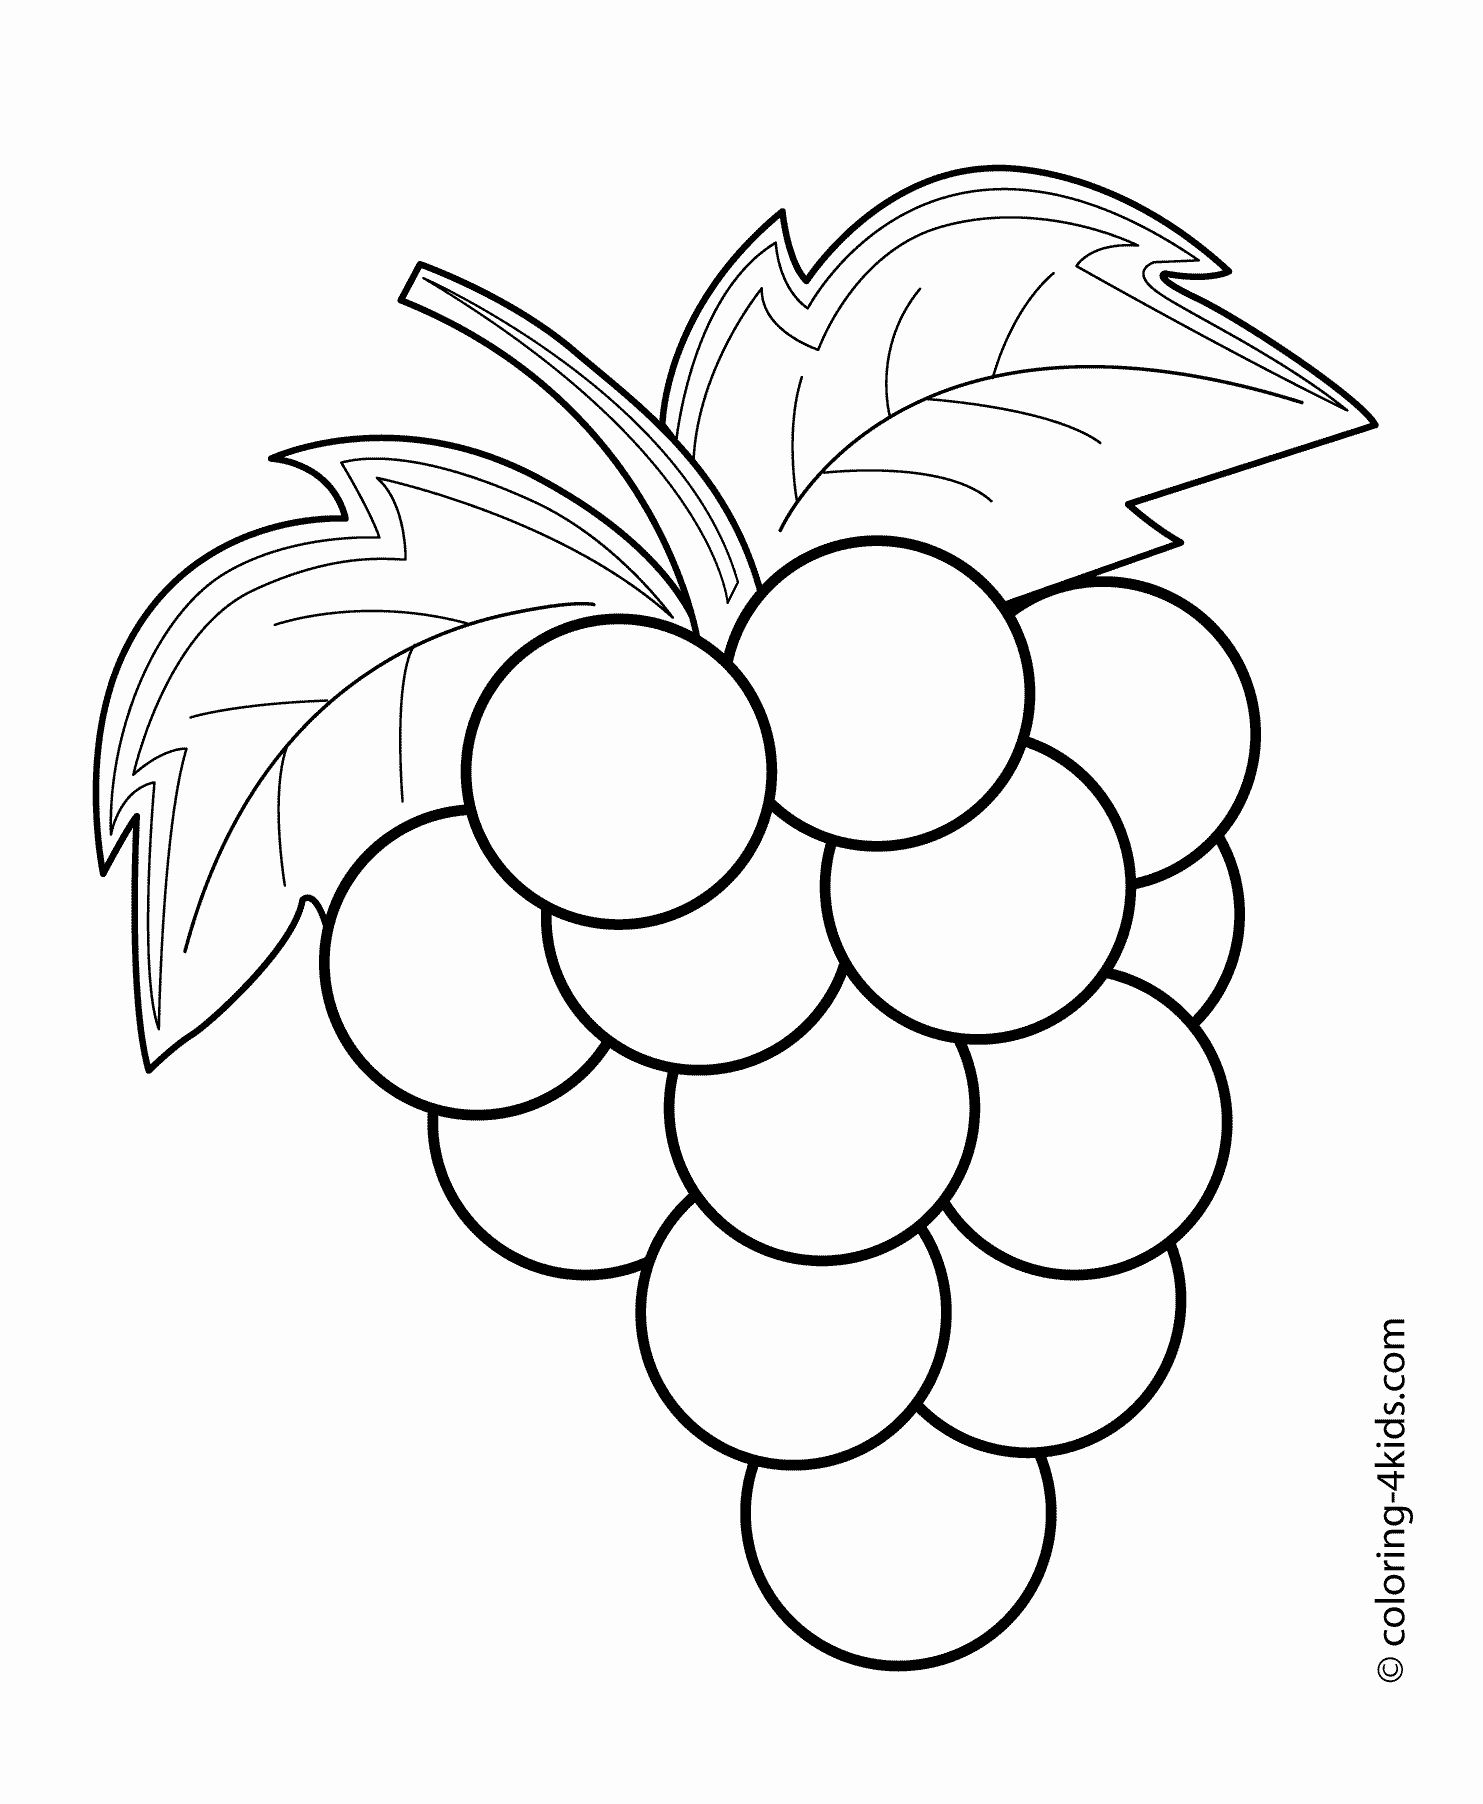 Fruit Coloring Flashcards In 2020 Fruit Coloring Pages